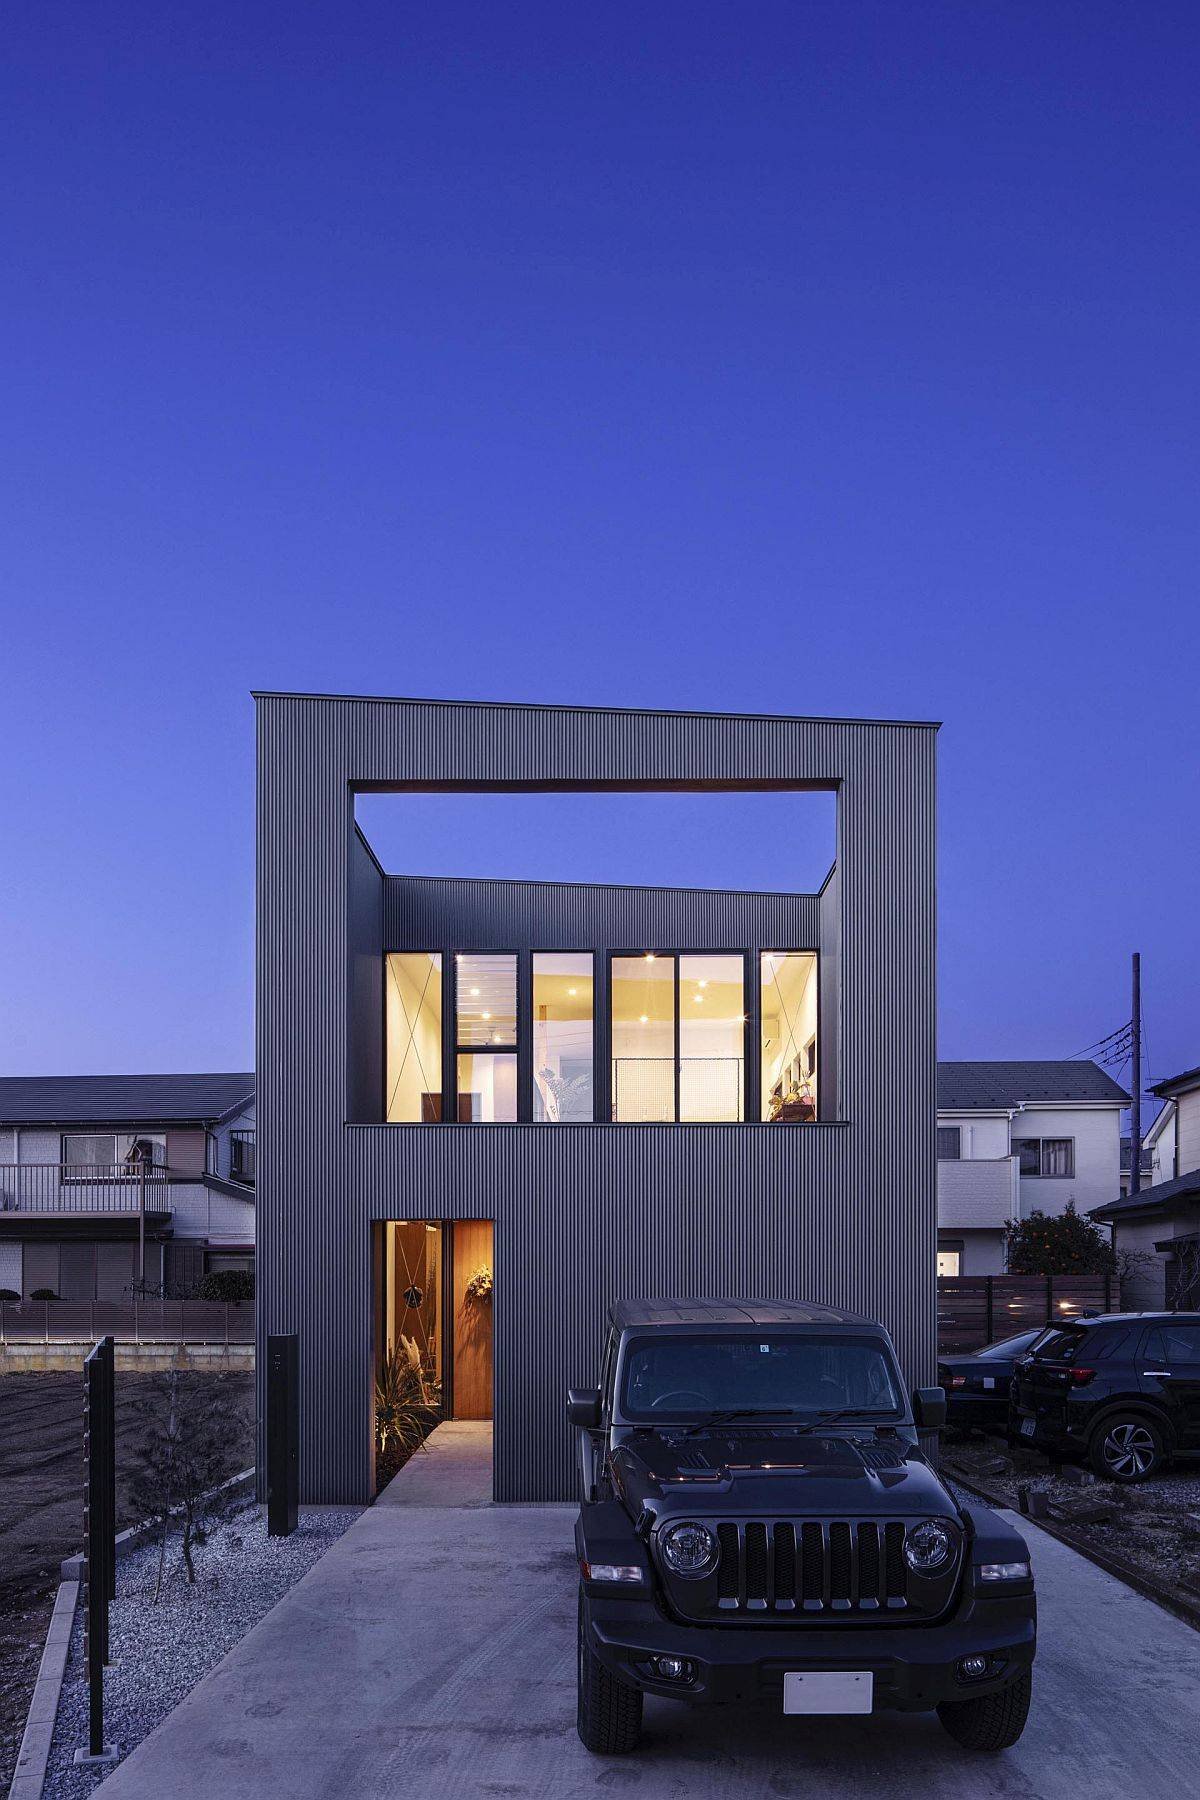 Innovative design of house I sets it apart from others in the neighborhood